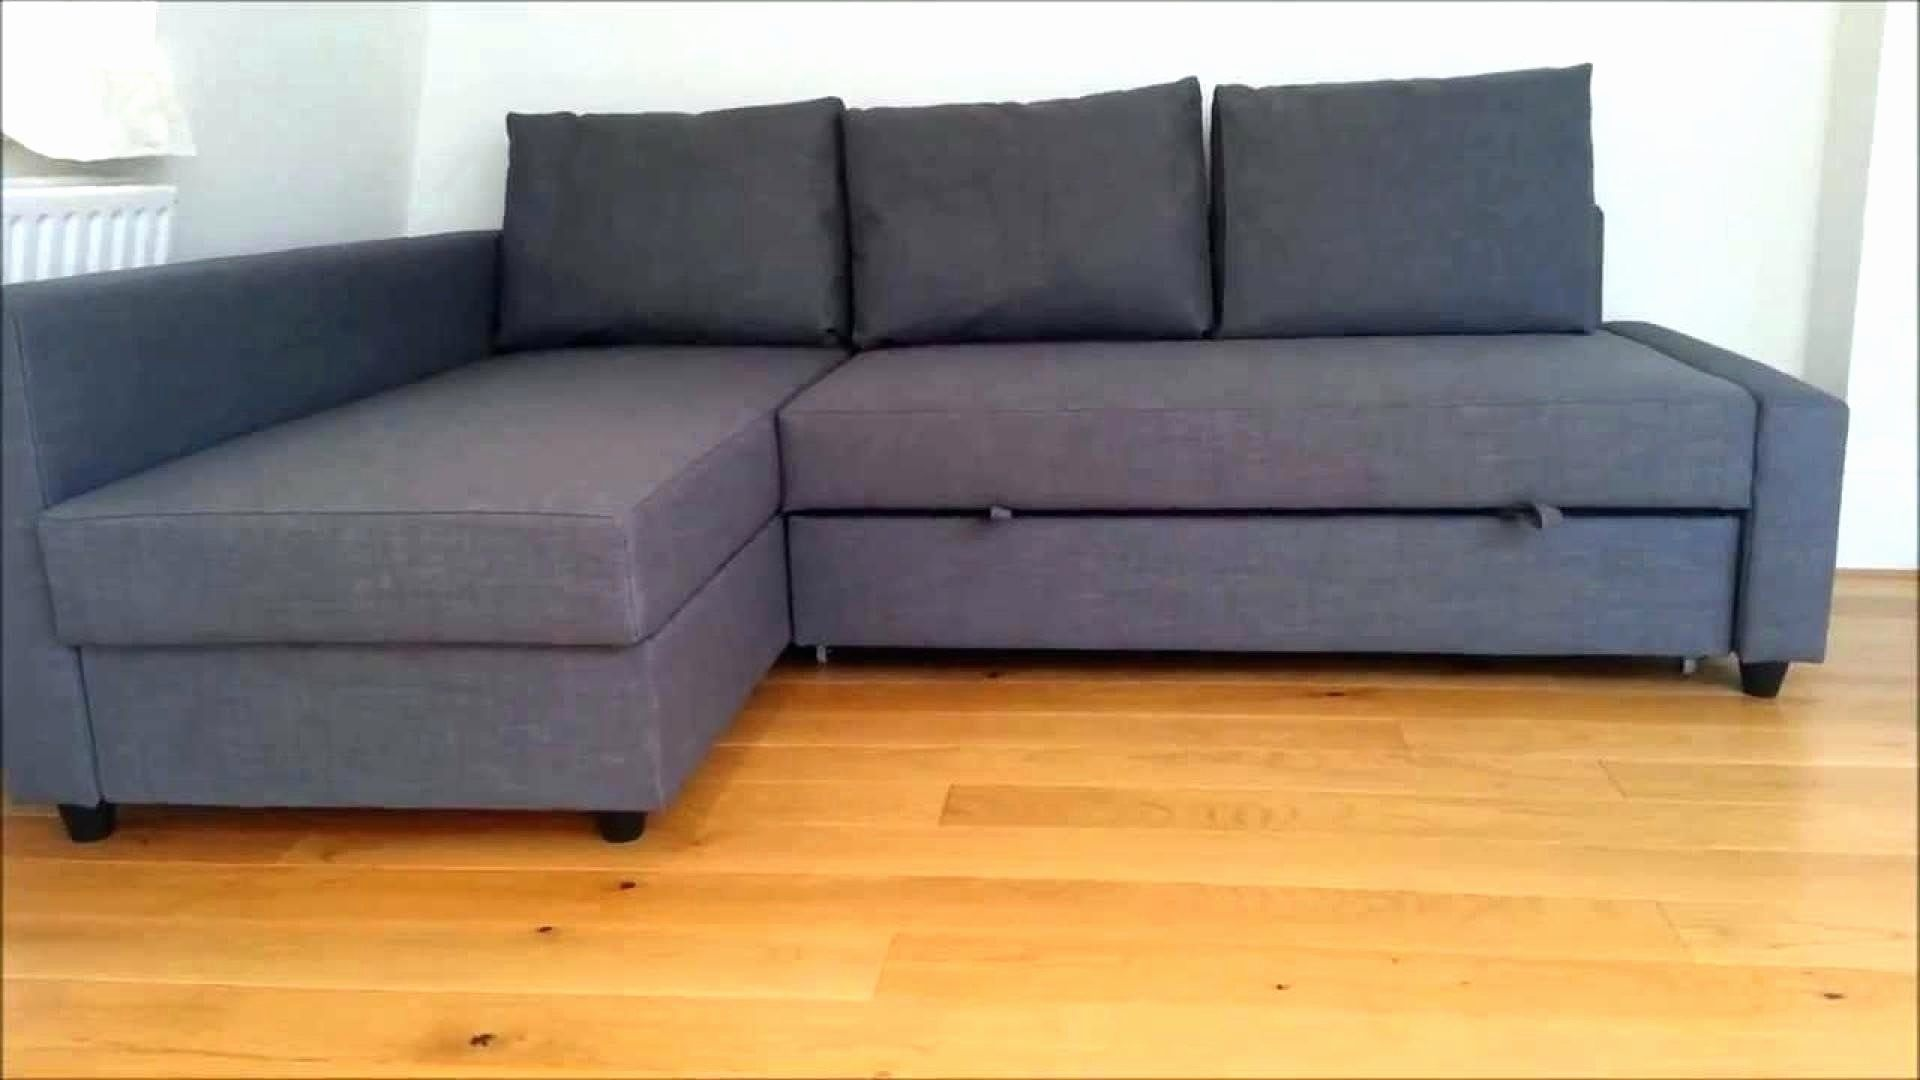 Lit Pas Cher Ikea Le Luxe Glamour Ikea Canape Cuir Ou but Salon Cuir Relax Awesome Canape